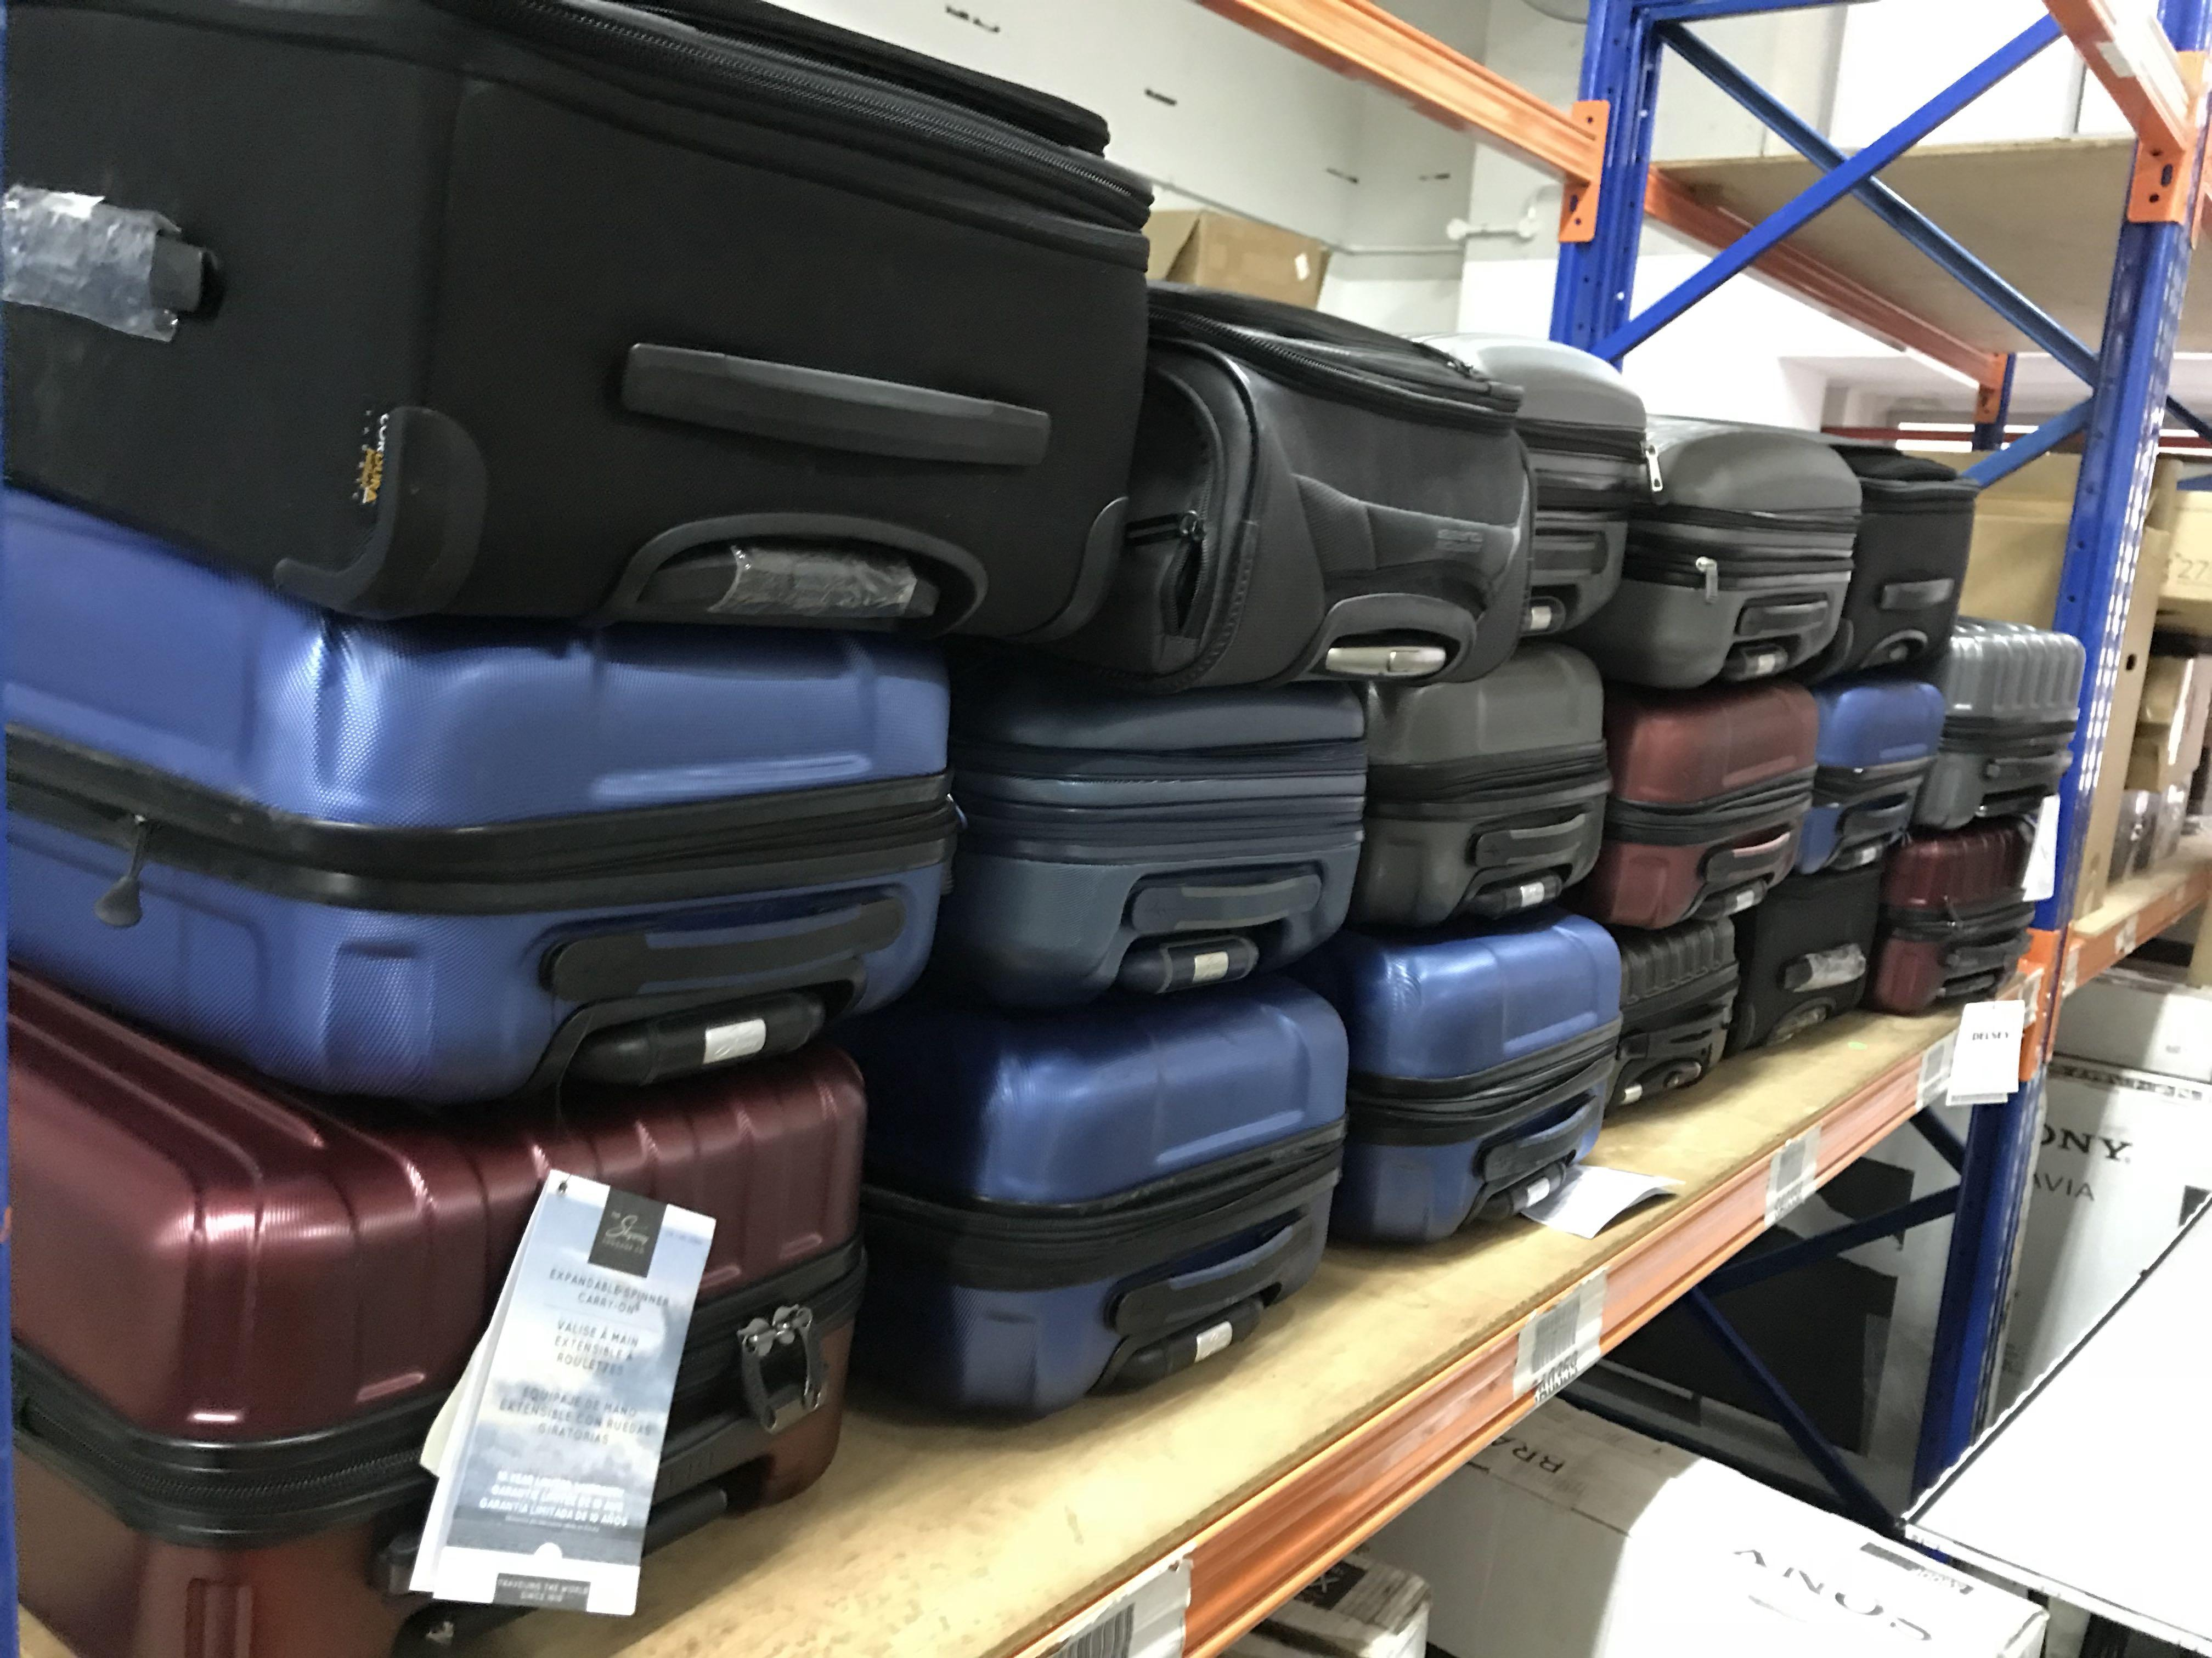 [Warehouse Clearance Only one month]Samsonite/American tourister/RICARDO/KIRKLANd/Skyway/ Travelers Famous Brand Suitcase Luggage 20''-22''